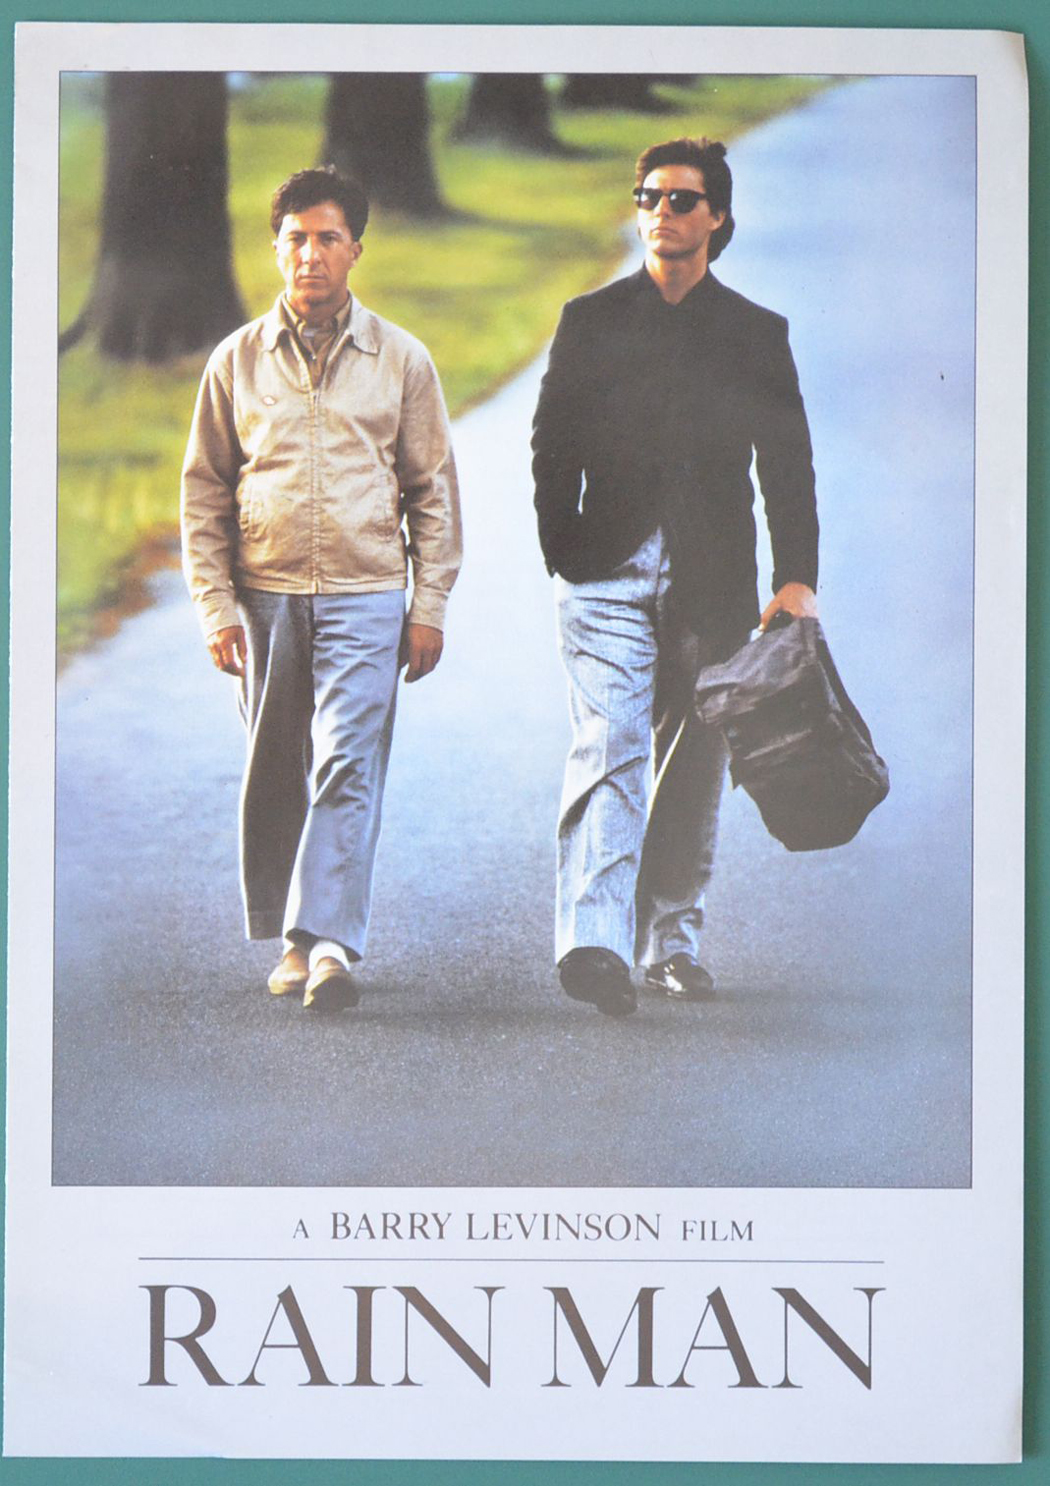 an analysis of the rain man a drama movie by barry levinston You can watch rain man online for free on this page by streaming the movie in the video player above or by choosing a different version to play below it.